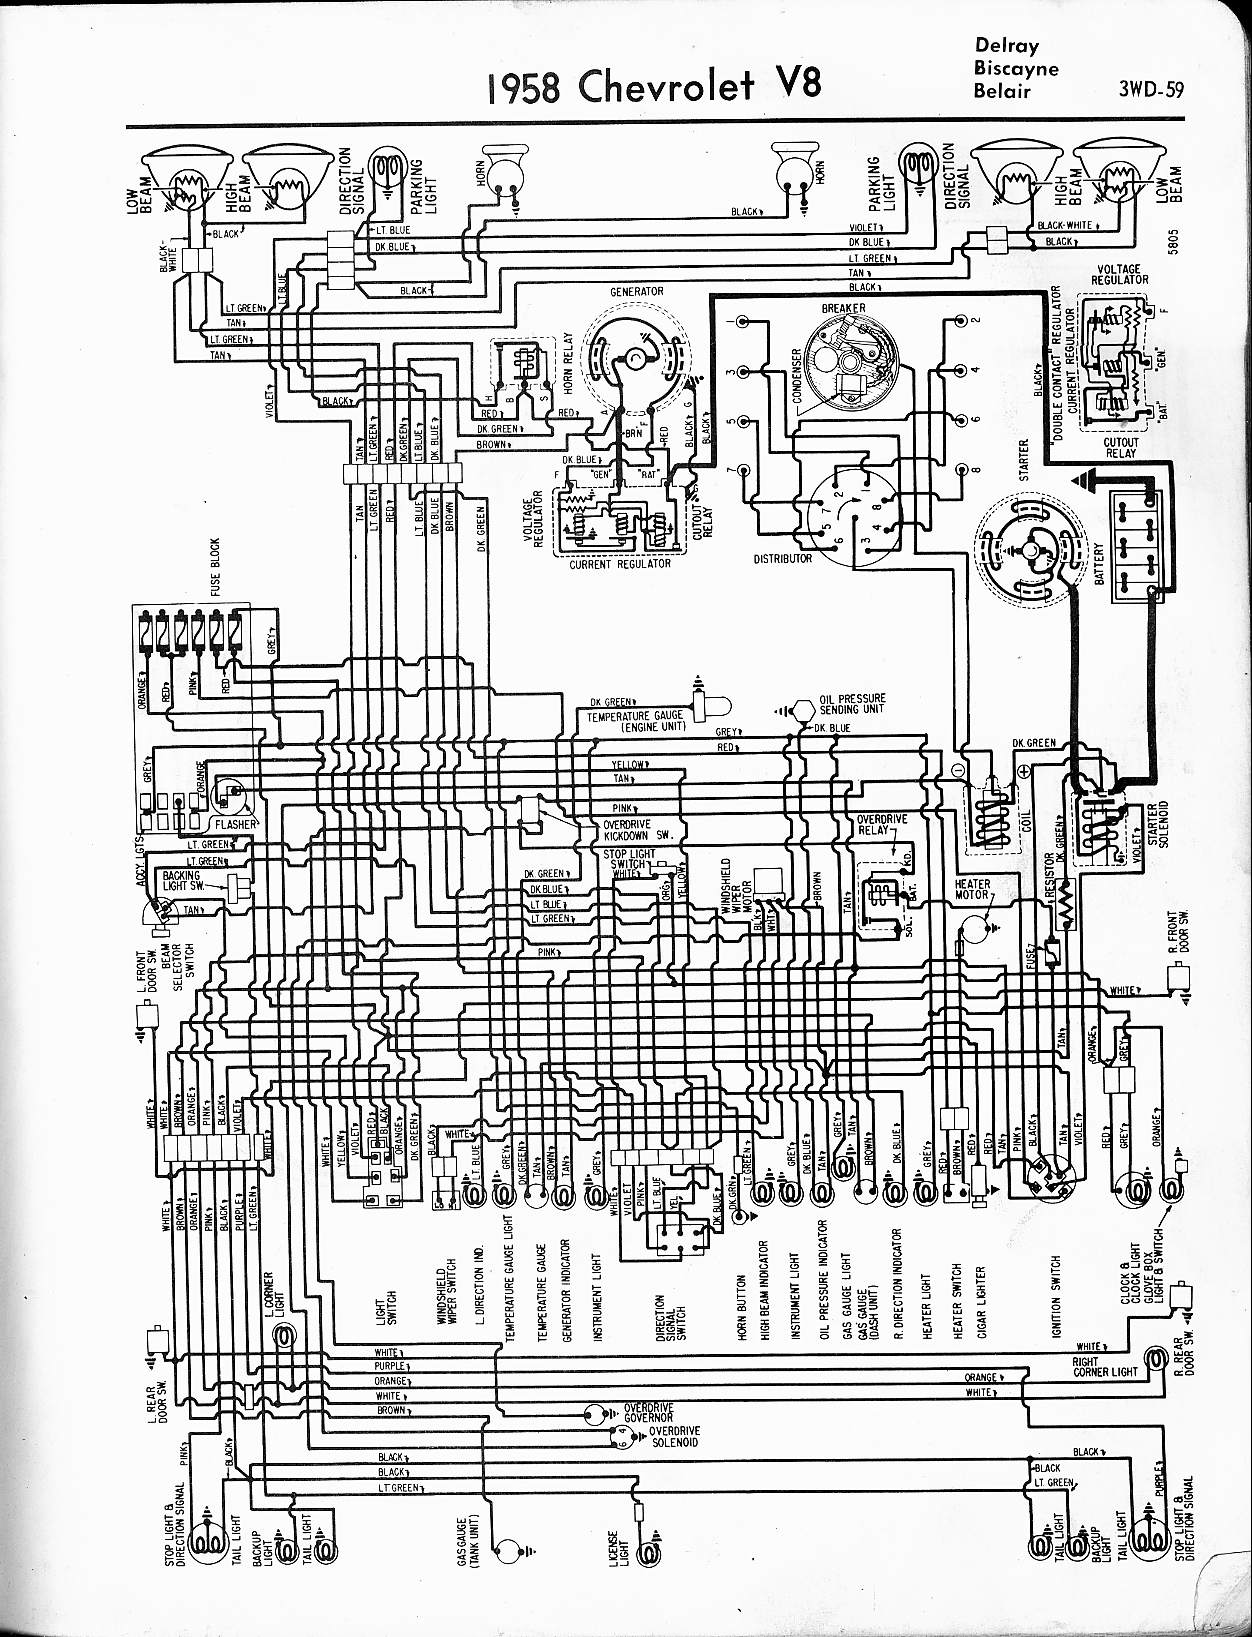 57 Chevy Wiring Harness Diagram Libraries Corvette Cigarette Lighter W Housing 19561957 1958 Schematic Diagrams